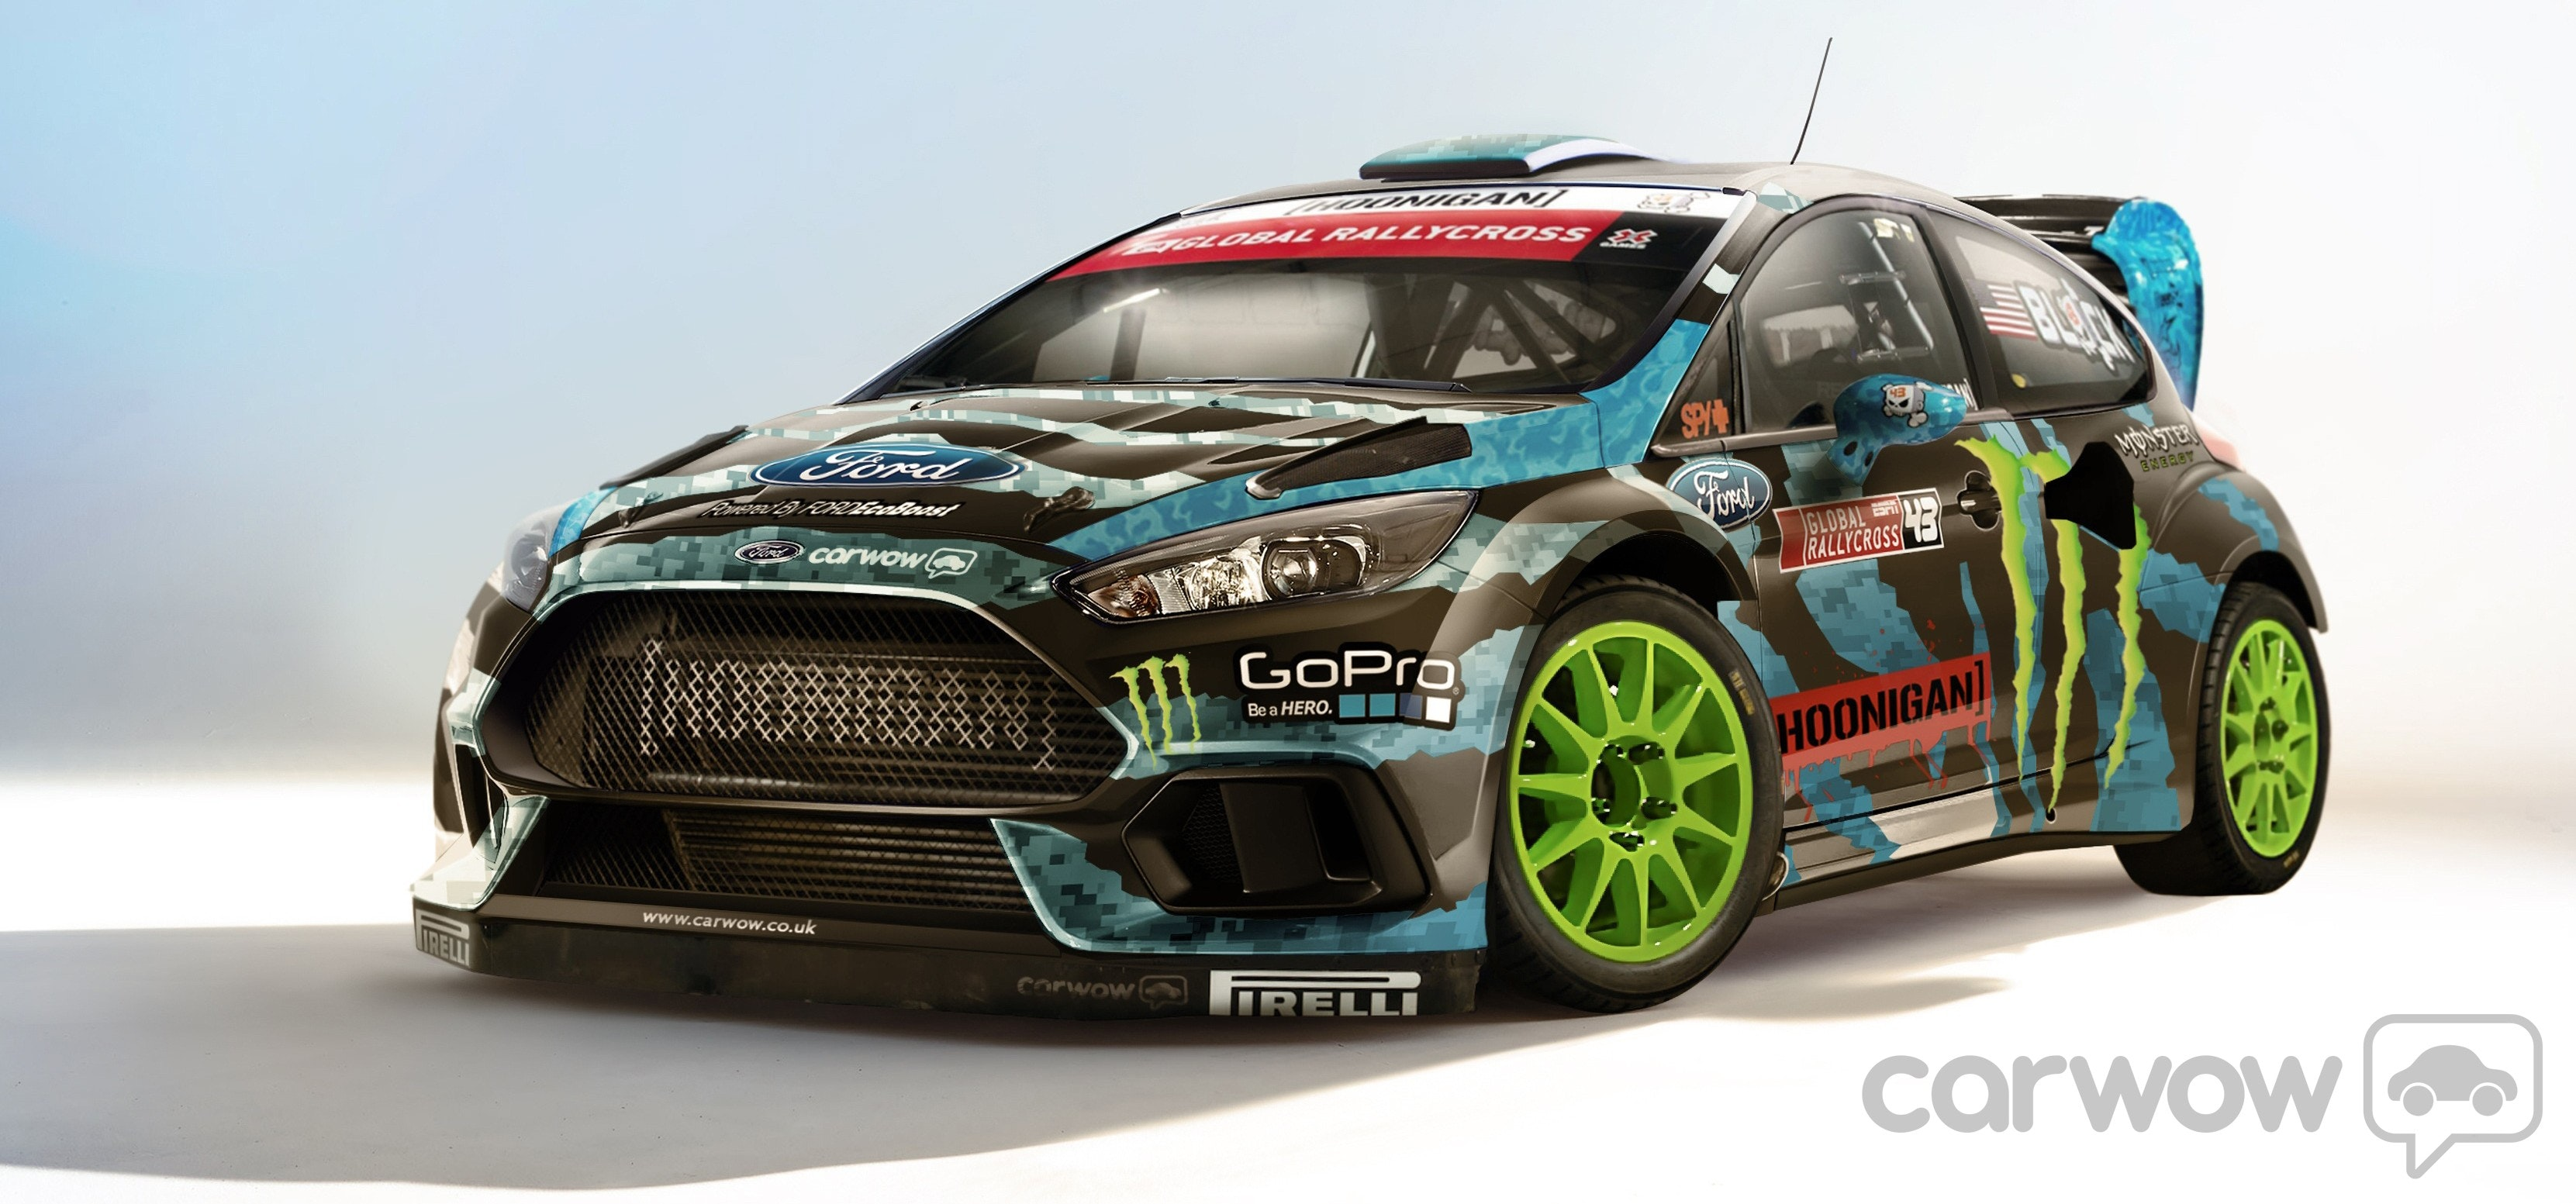 Rally cars are limited to around 300hp but for his Gymkhanas Blocku0027s team could turn it anywhere up to around 800hp u2013 enough to keep all four tyres ... & 2015 Ken Block Ford Focus RS gymkhana u2013 imagined by carwow | carwow markmcfarlin.com